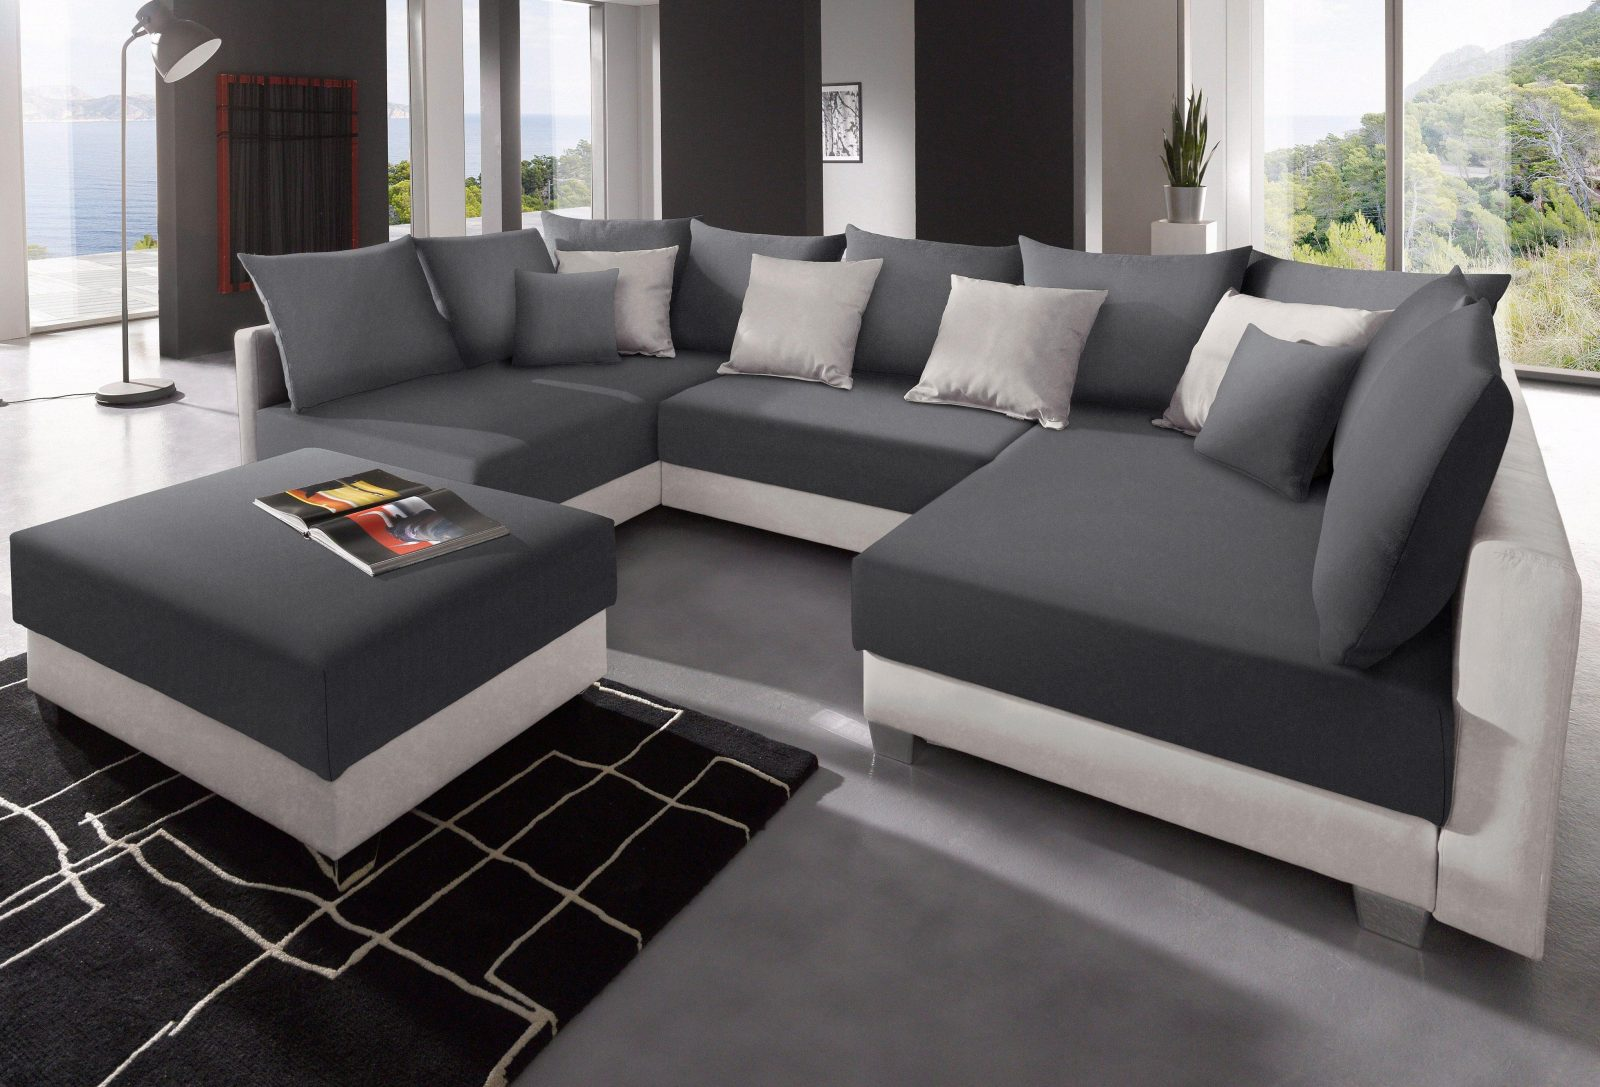 l sofa xxl 7 wohnlandschaft matera xxl u form design couch led von wohnlandschaft xxl u form. Black Bedroom Furniture Sets. Home Design Ideas